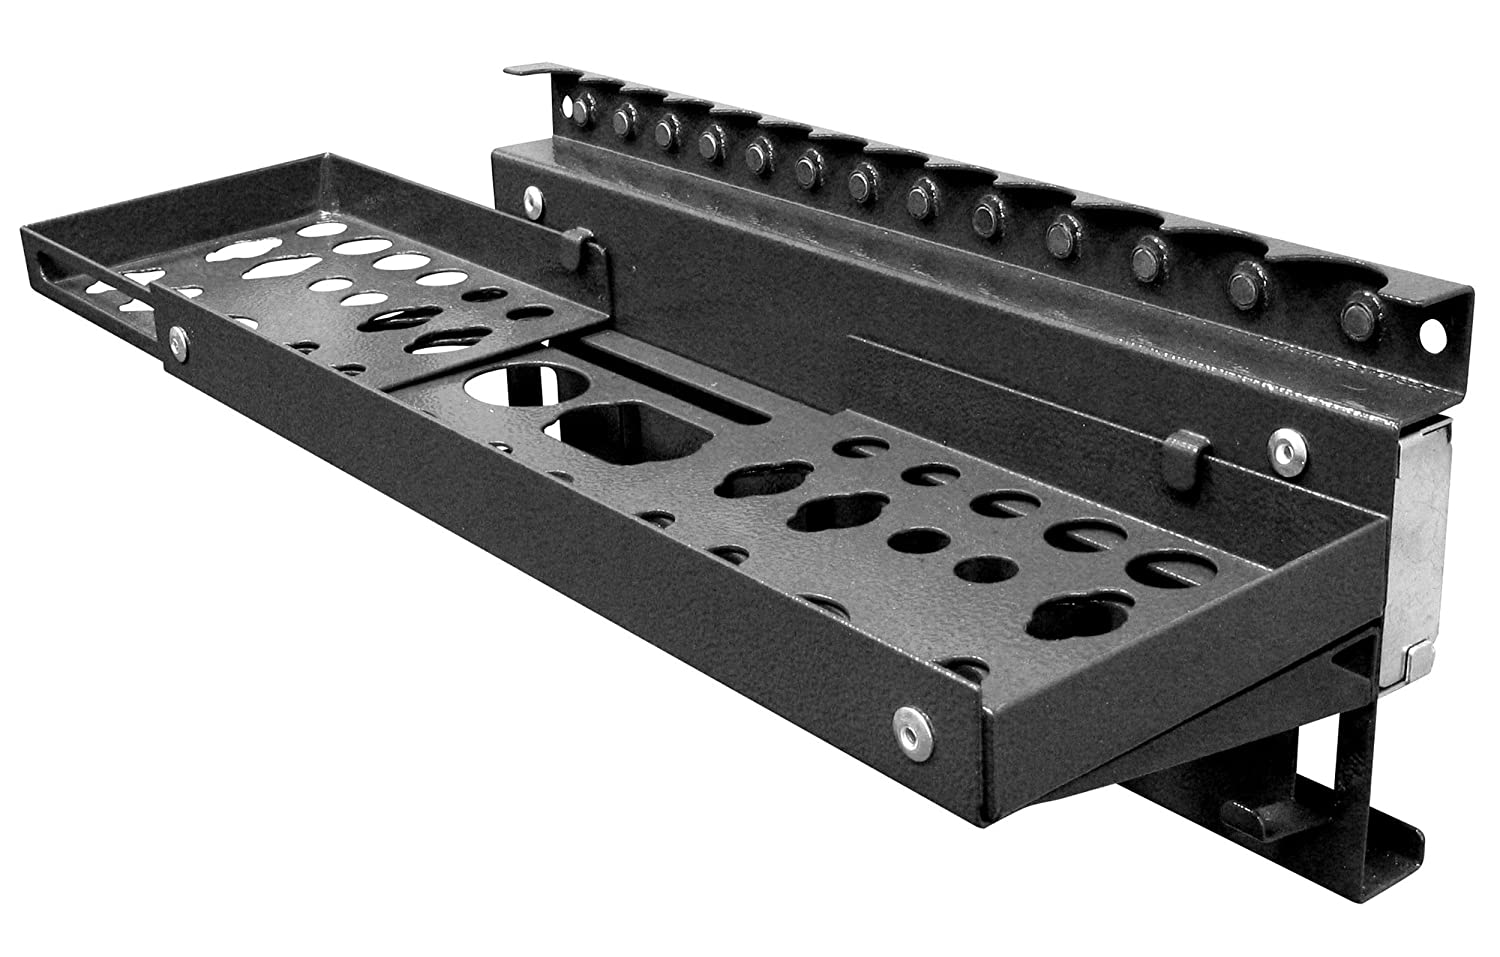 Black Steel Triton Products KTI-72465 MagClip Magnetic Multi-Function Tool Holder 20-Inch W by 5-Inch D by 4.75-Inch H